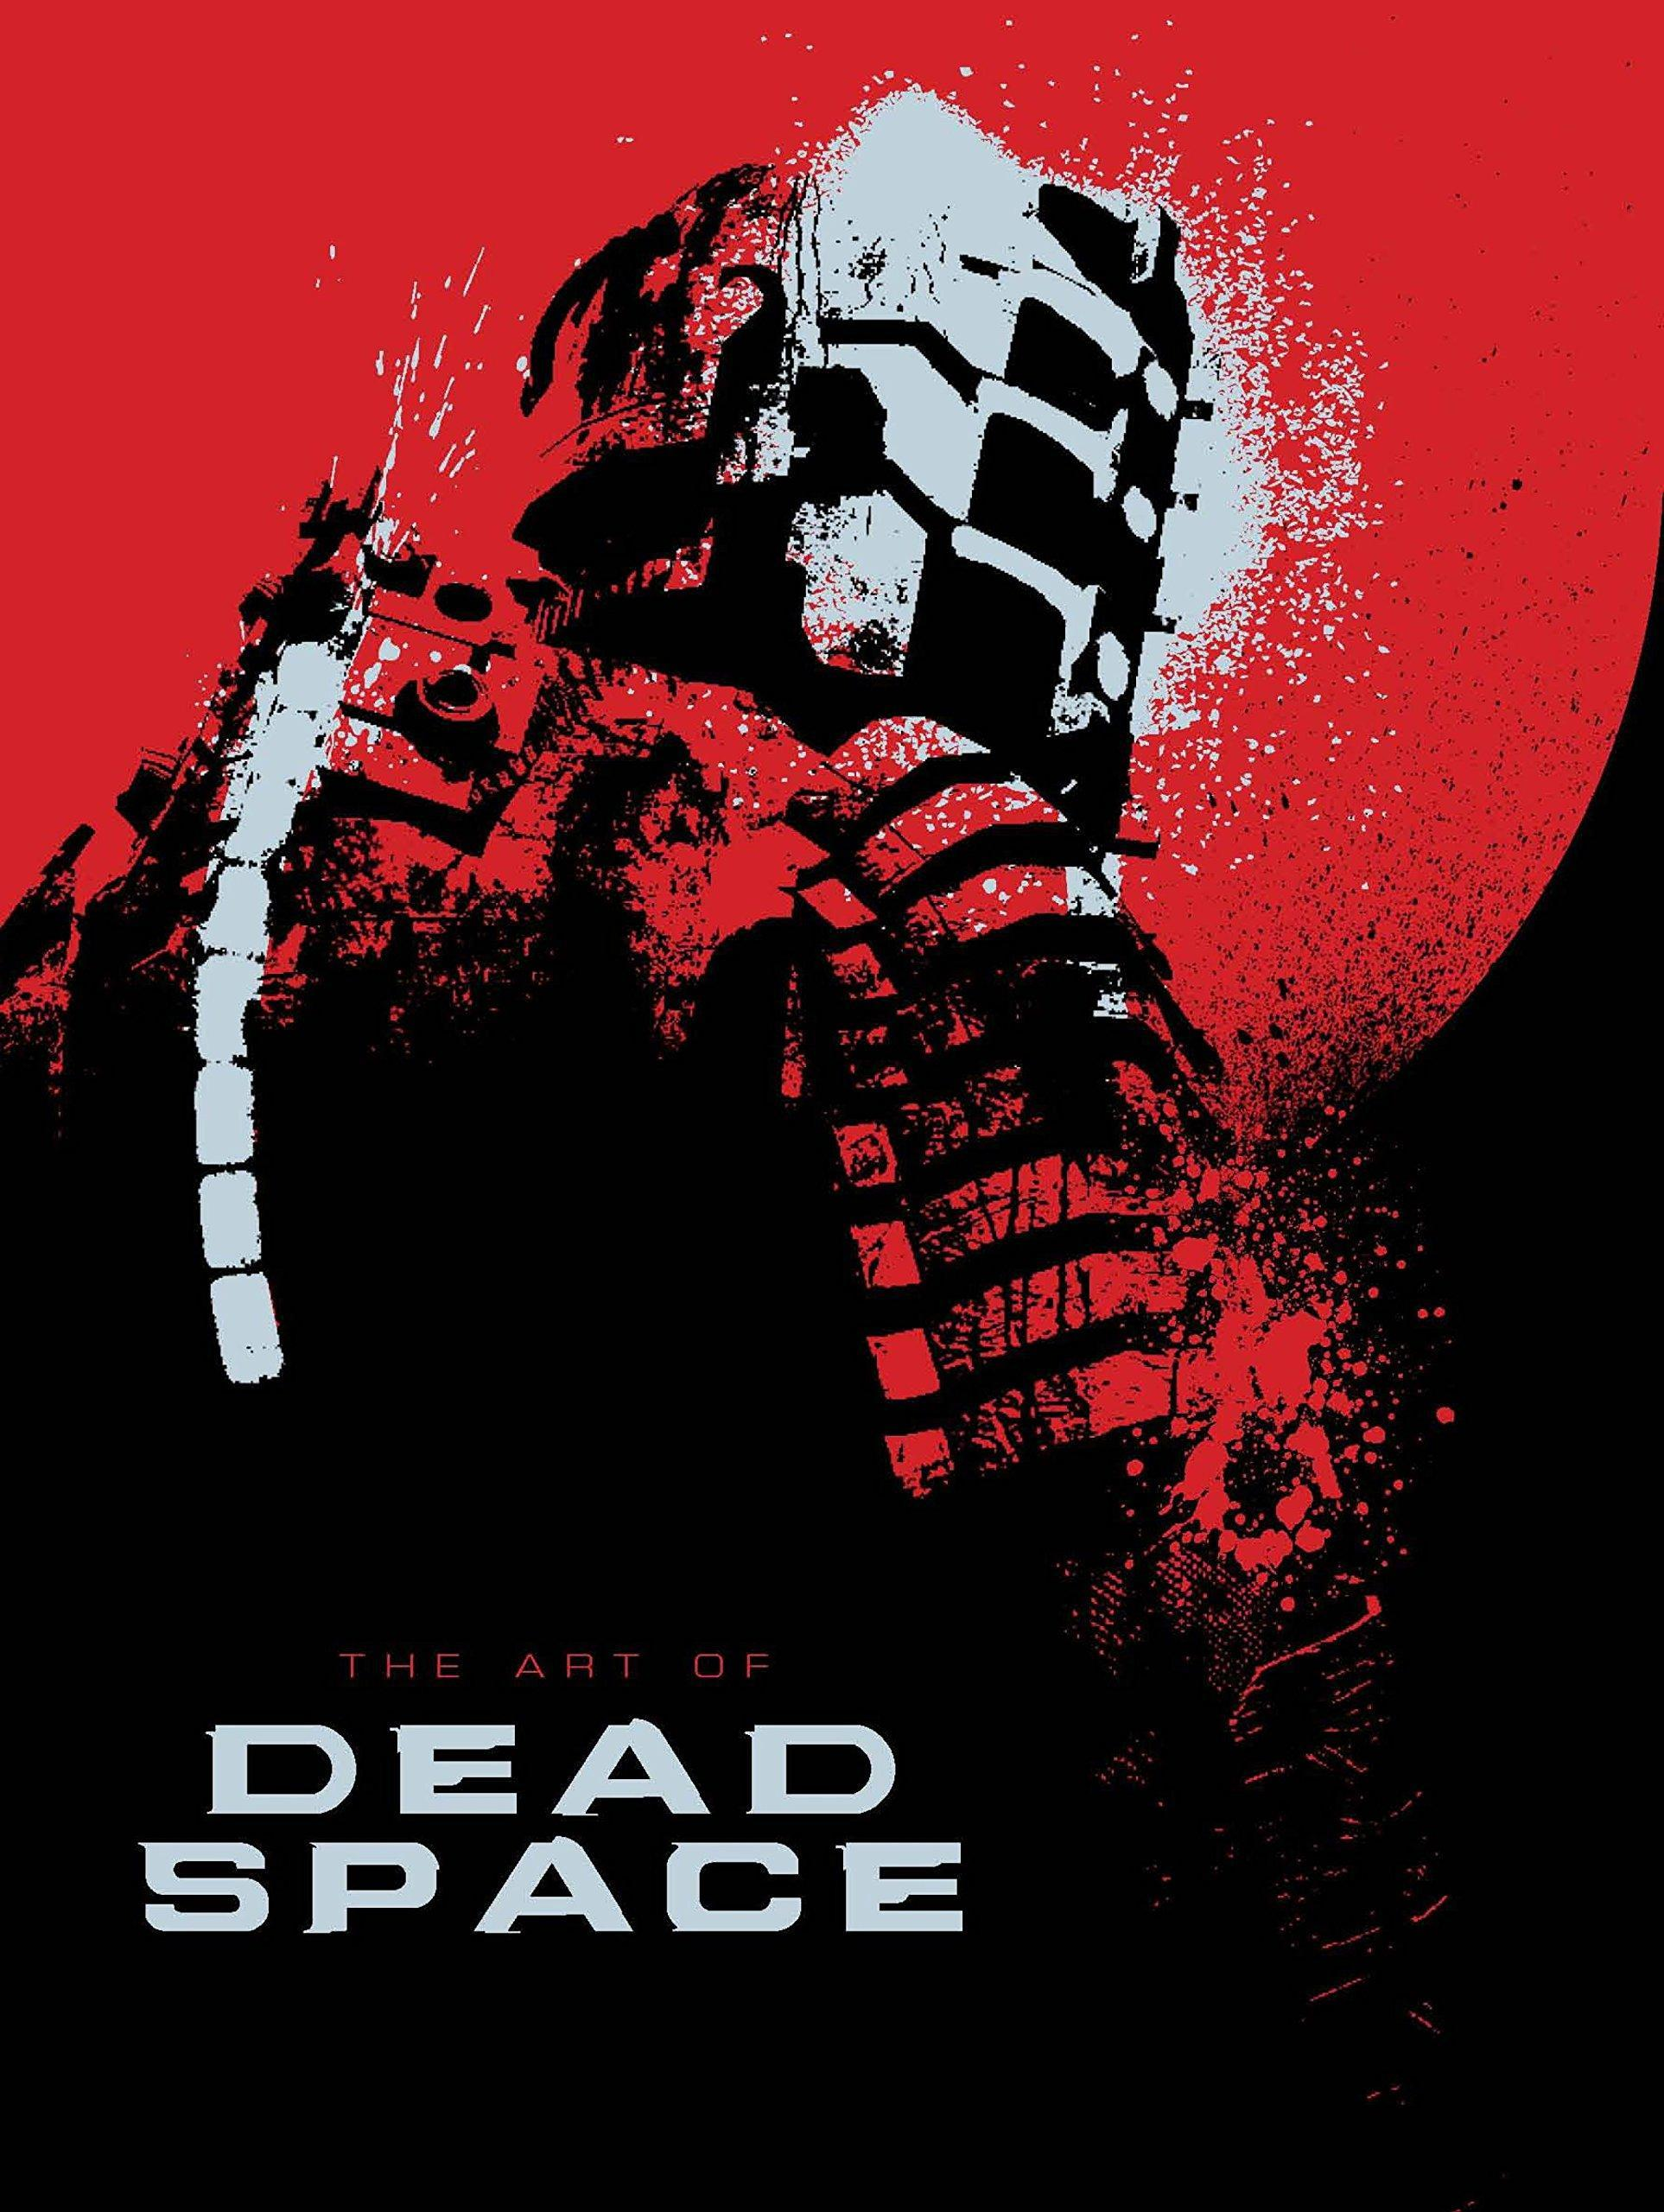 Dead Space Wallpapers For Phone For Android Apk Download